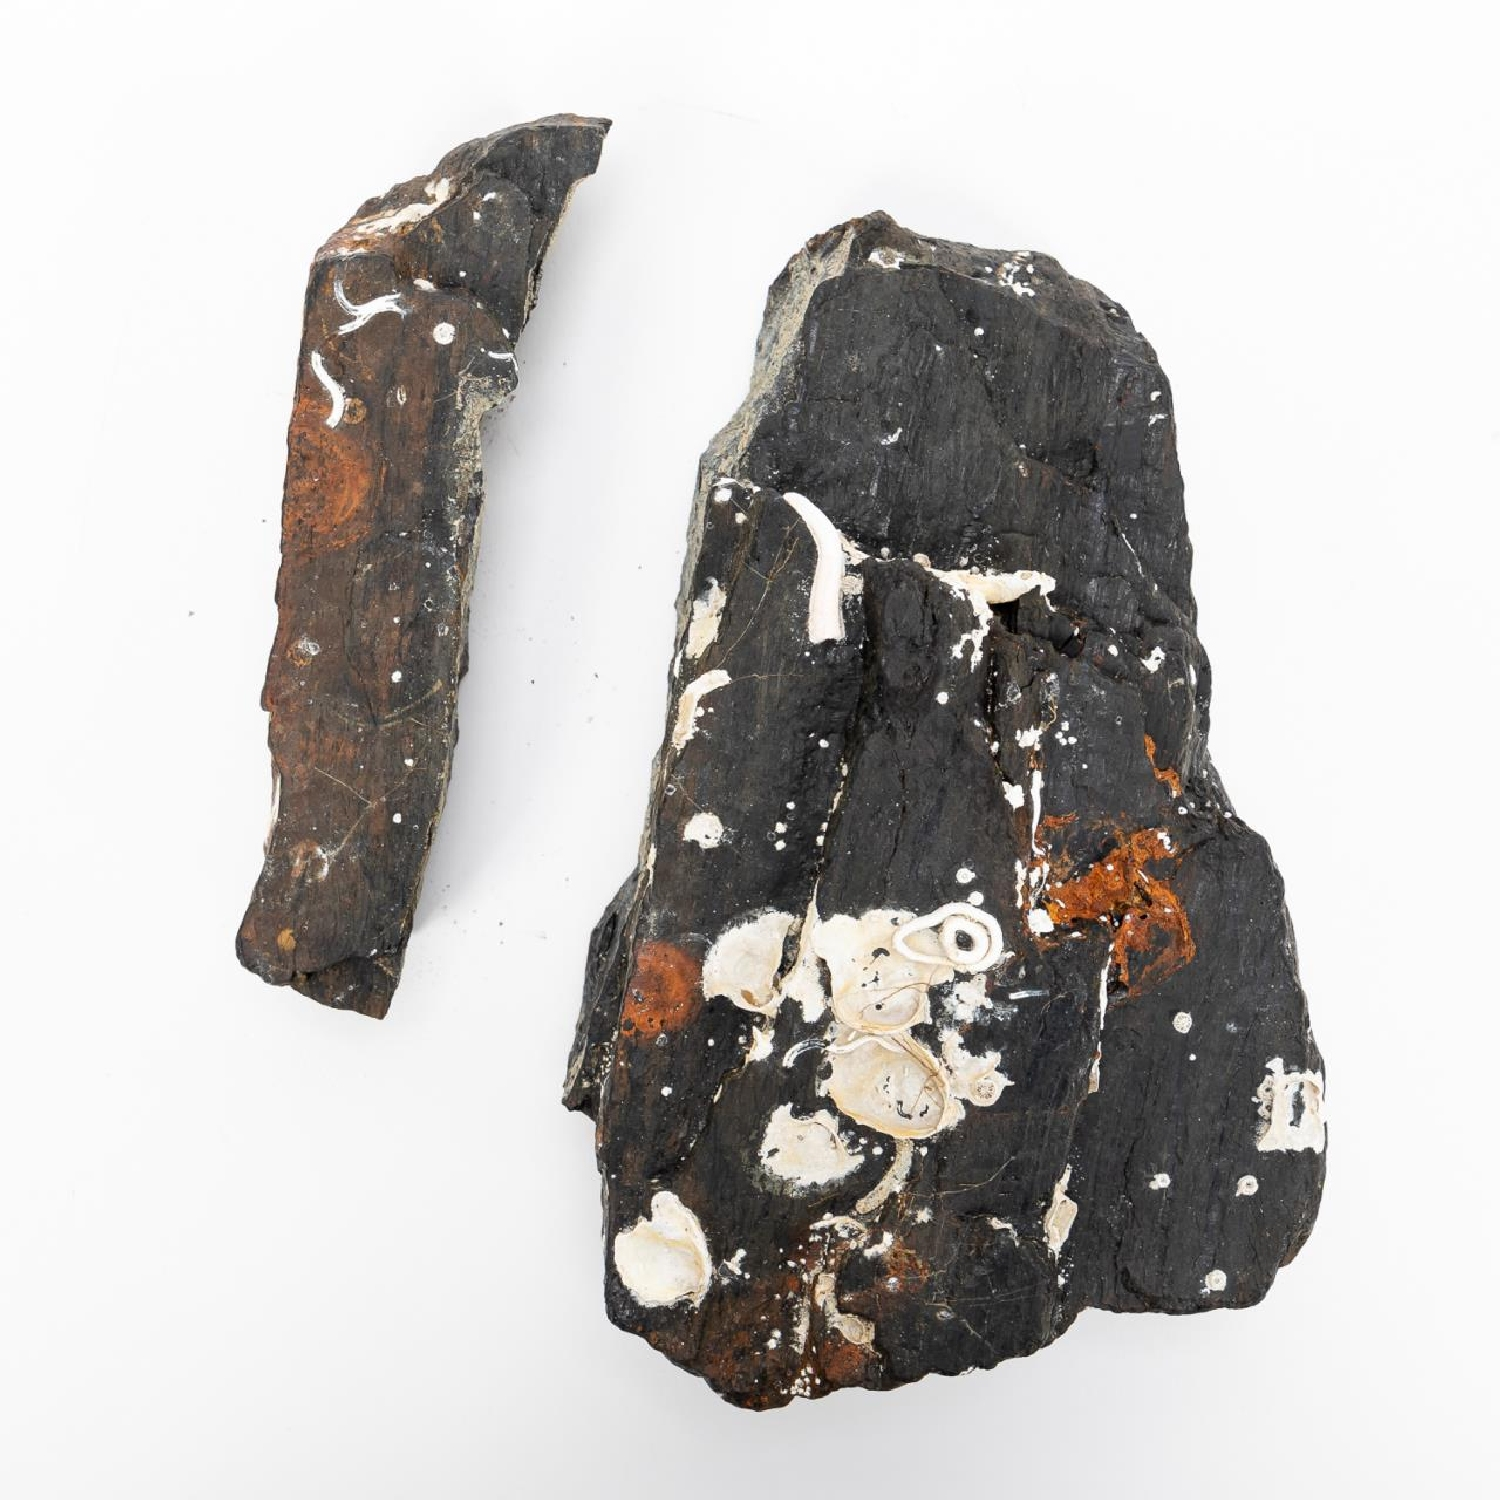 RMS CARPATHIA, SALVAGED COAL IN TWO PIECES - Image 2 of 7